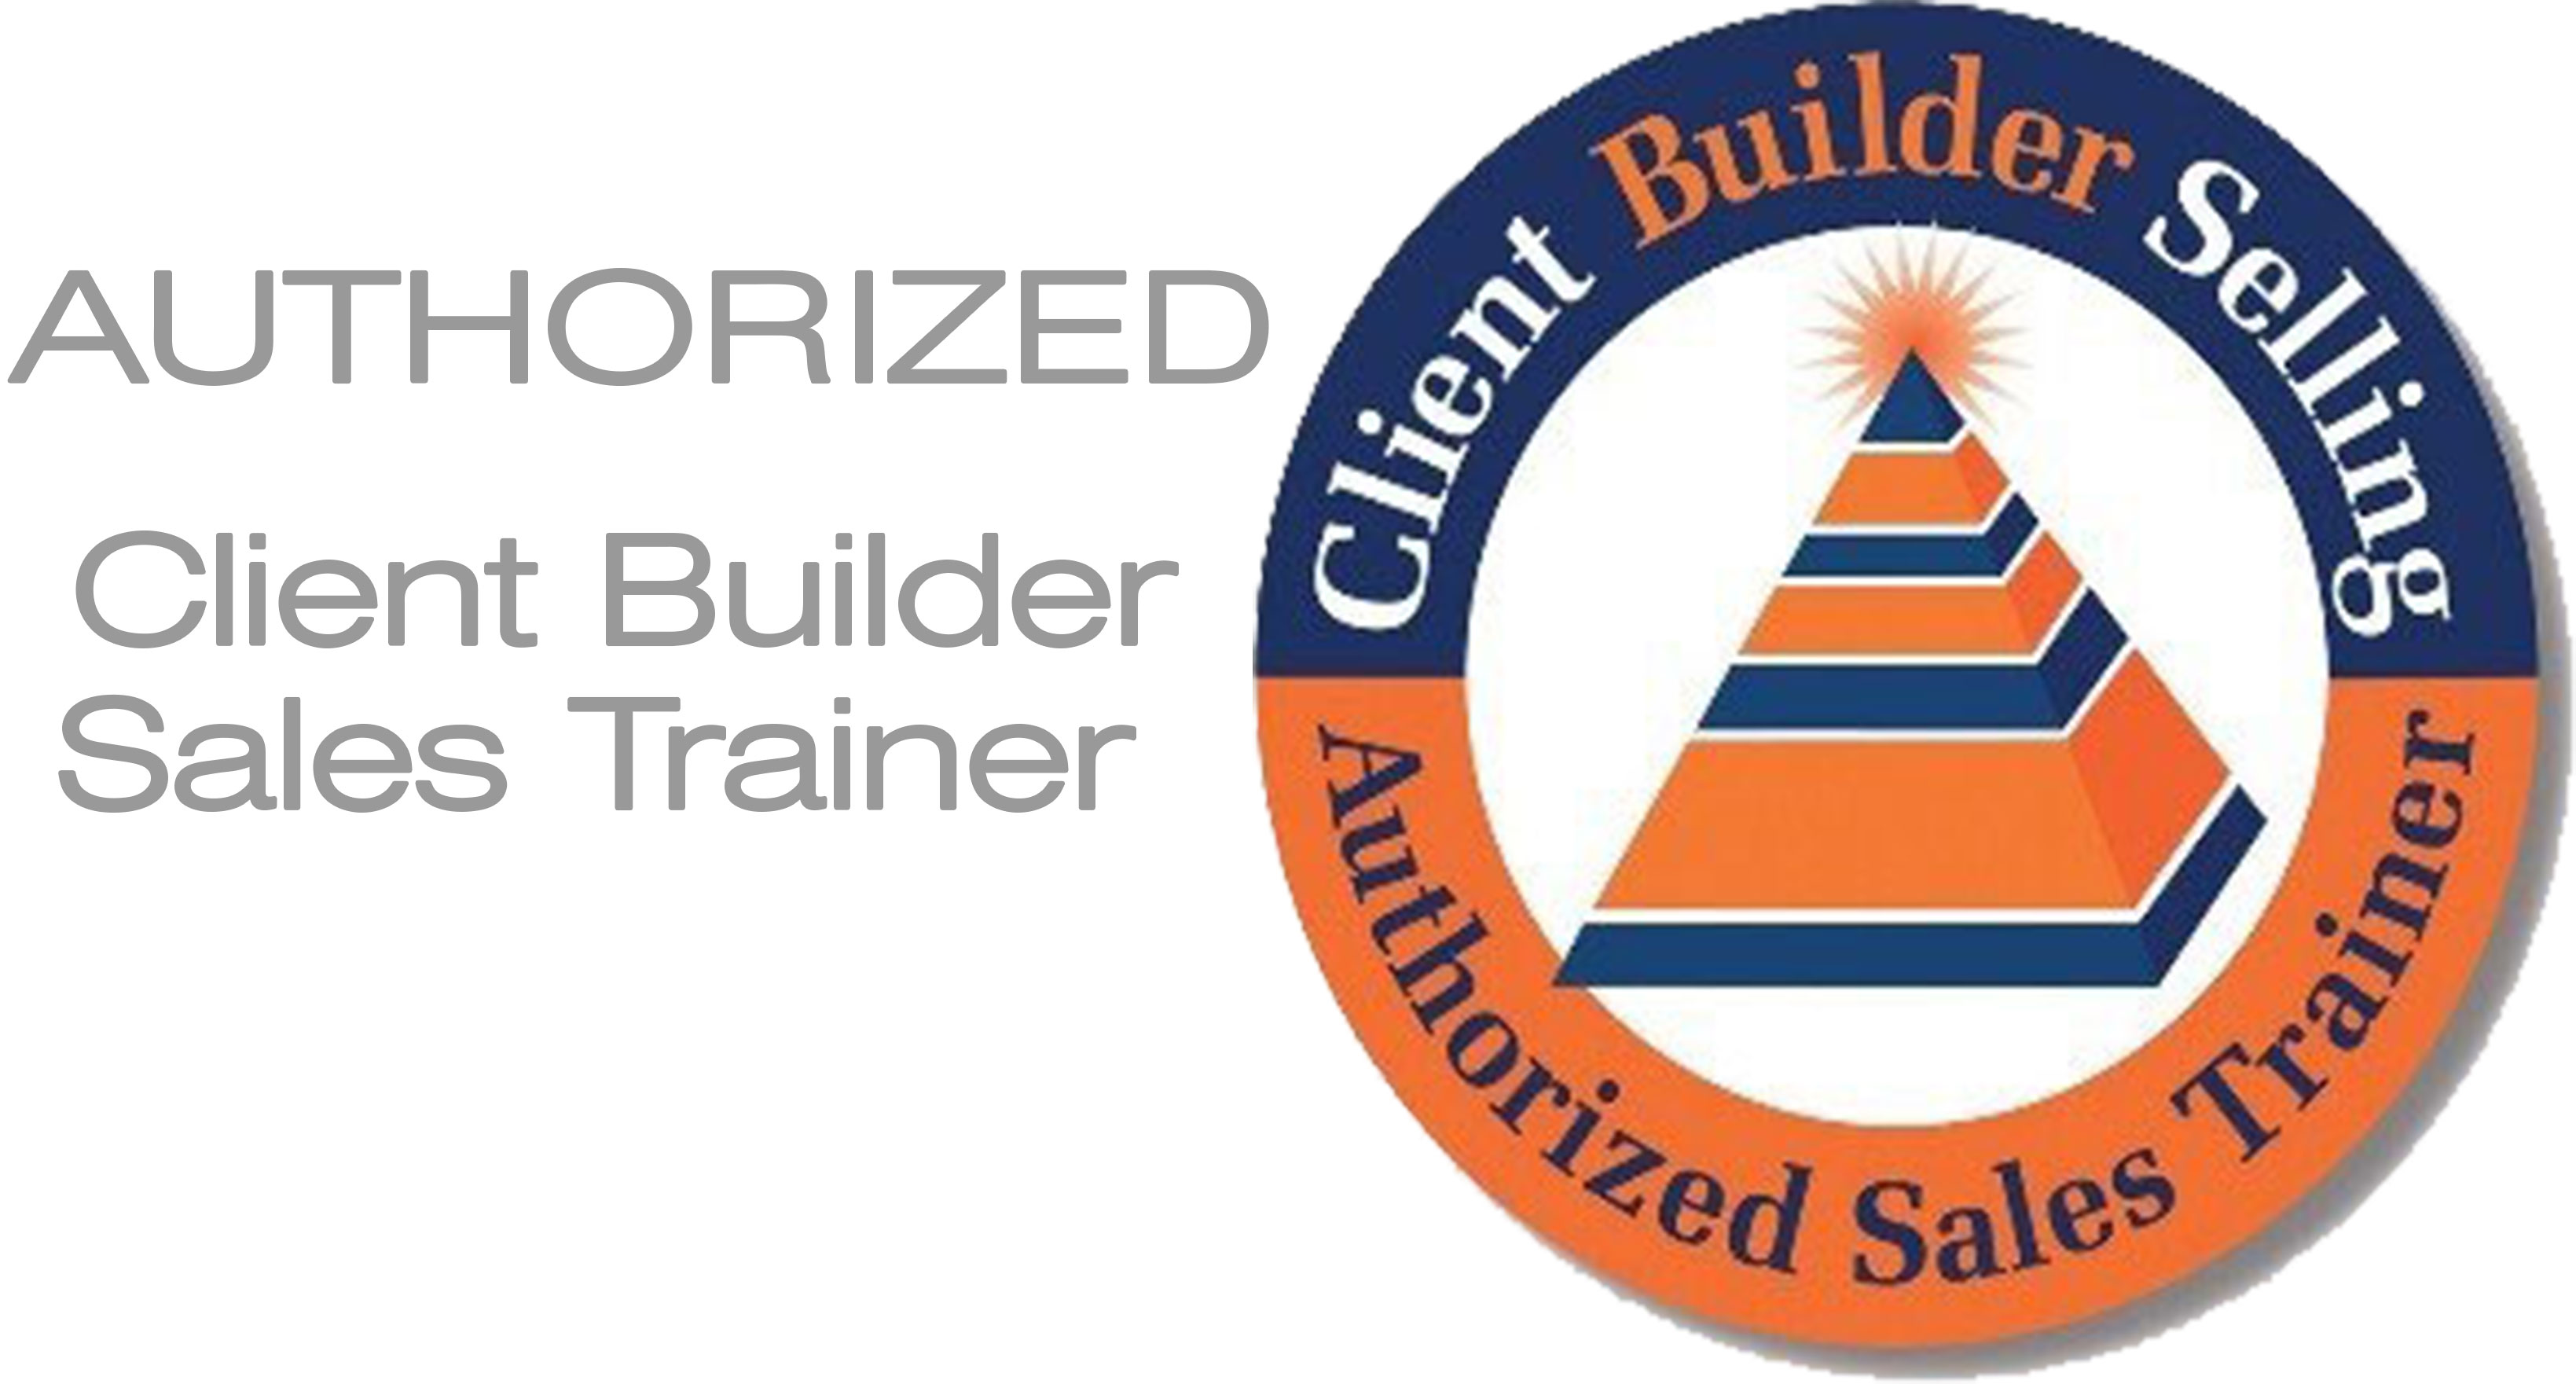 Authorized Client Builder Sales Trainer